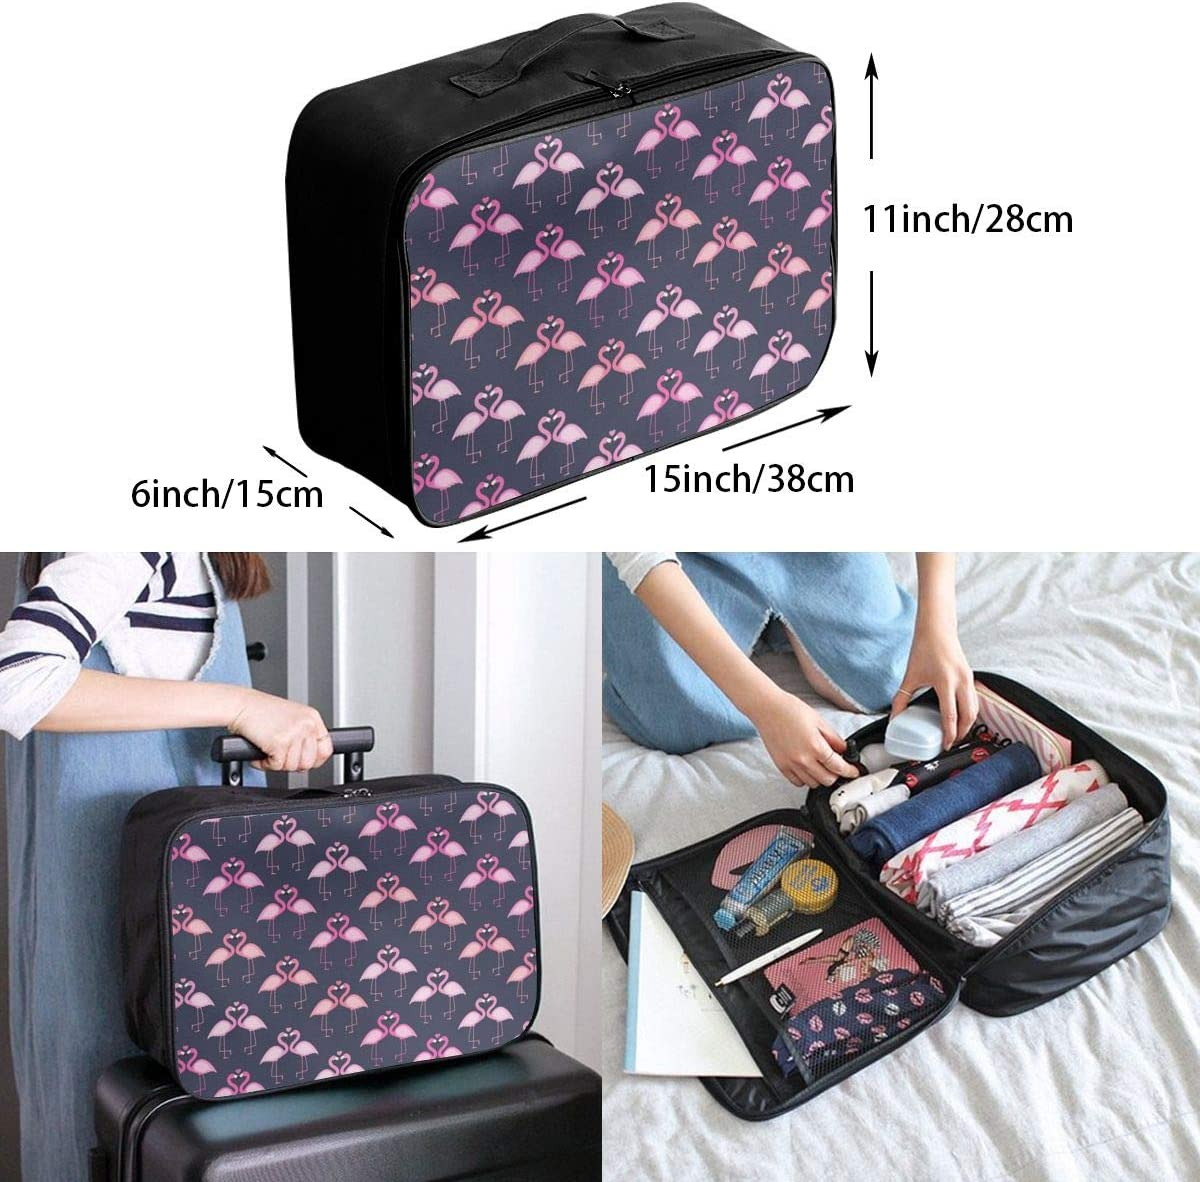 Yunshm Cute Seamless Flamingo Pattern Vector Image Customized Trolley Handbag Waterproof Unisex Large Capacity For Business Travel Storage